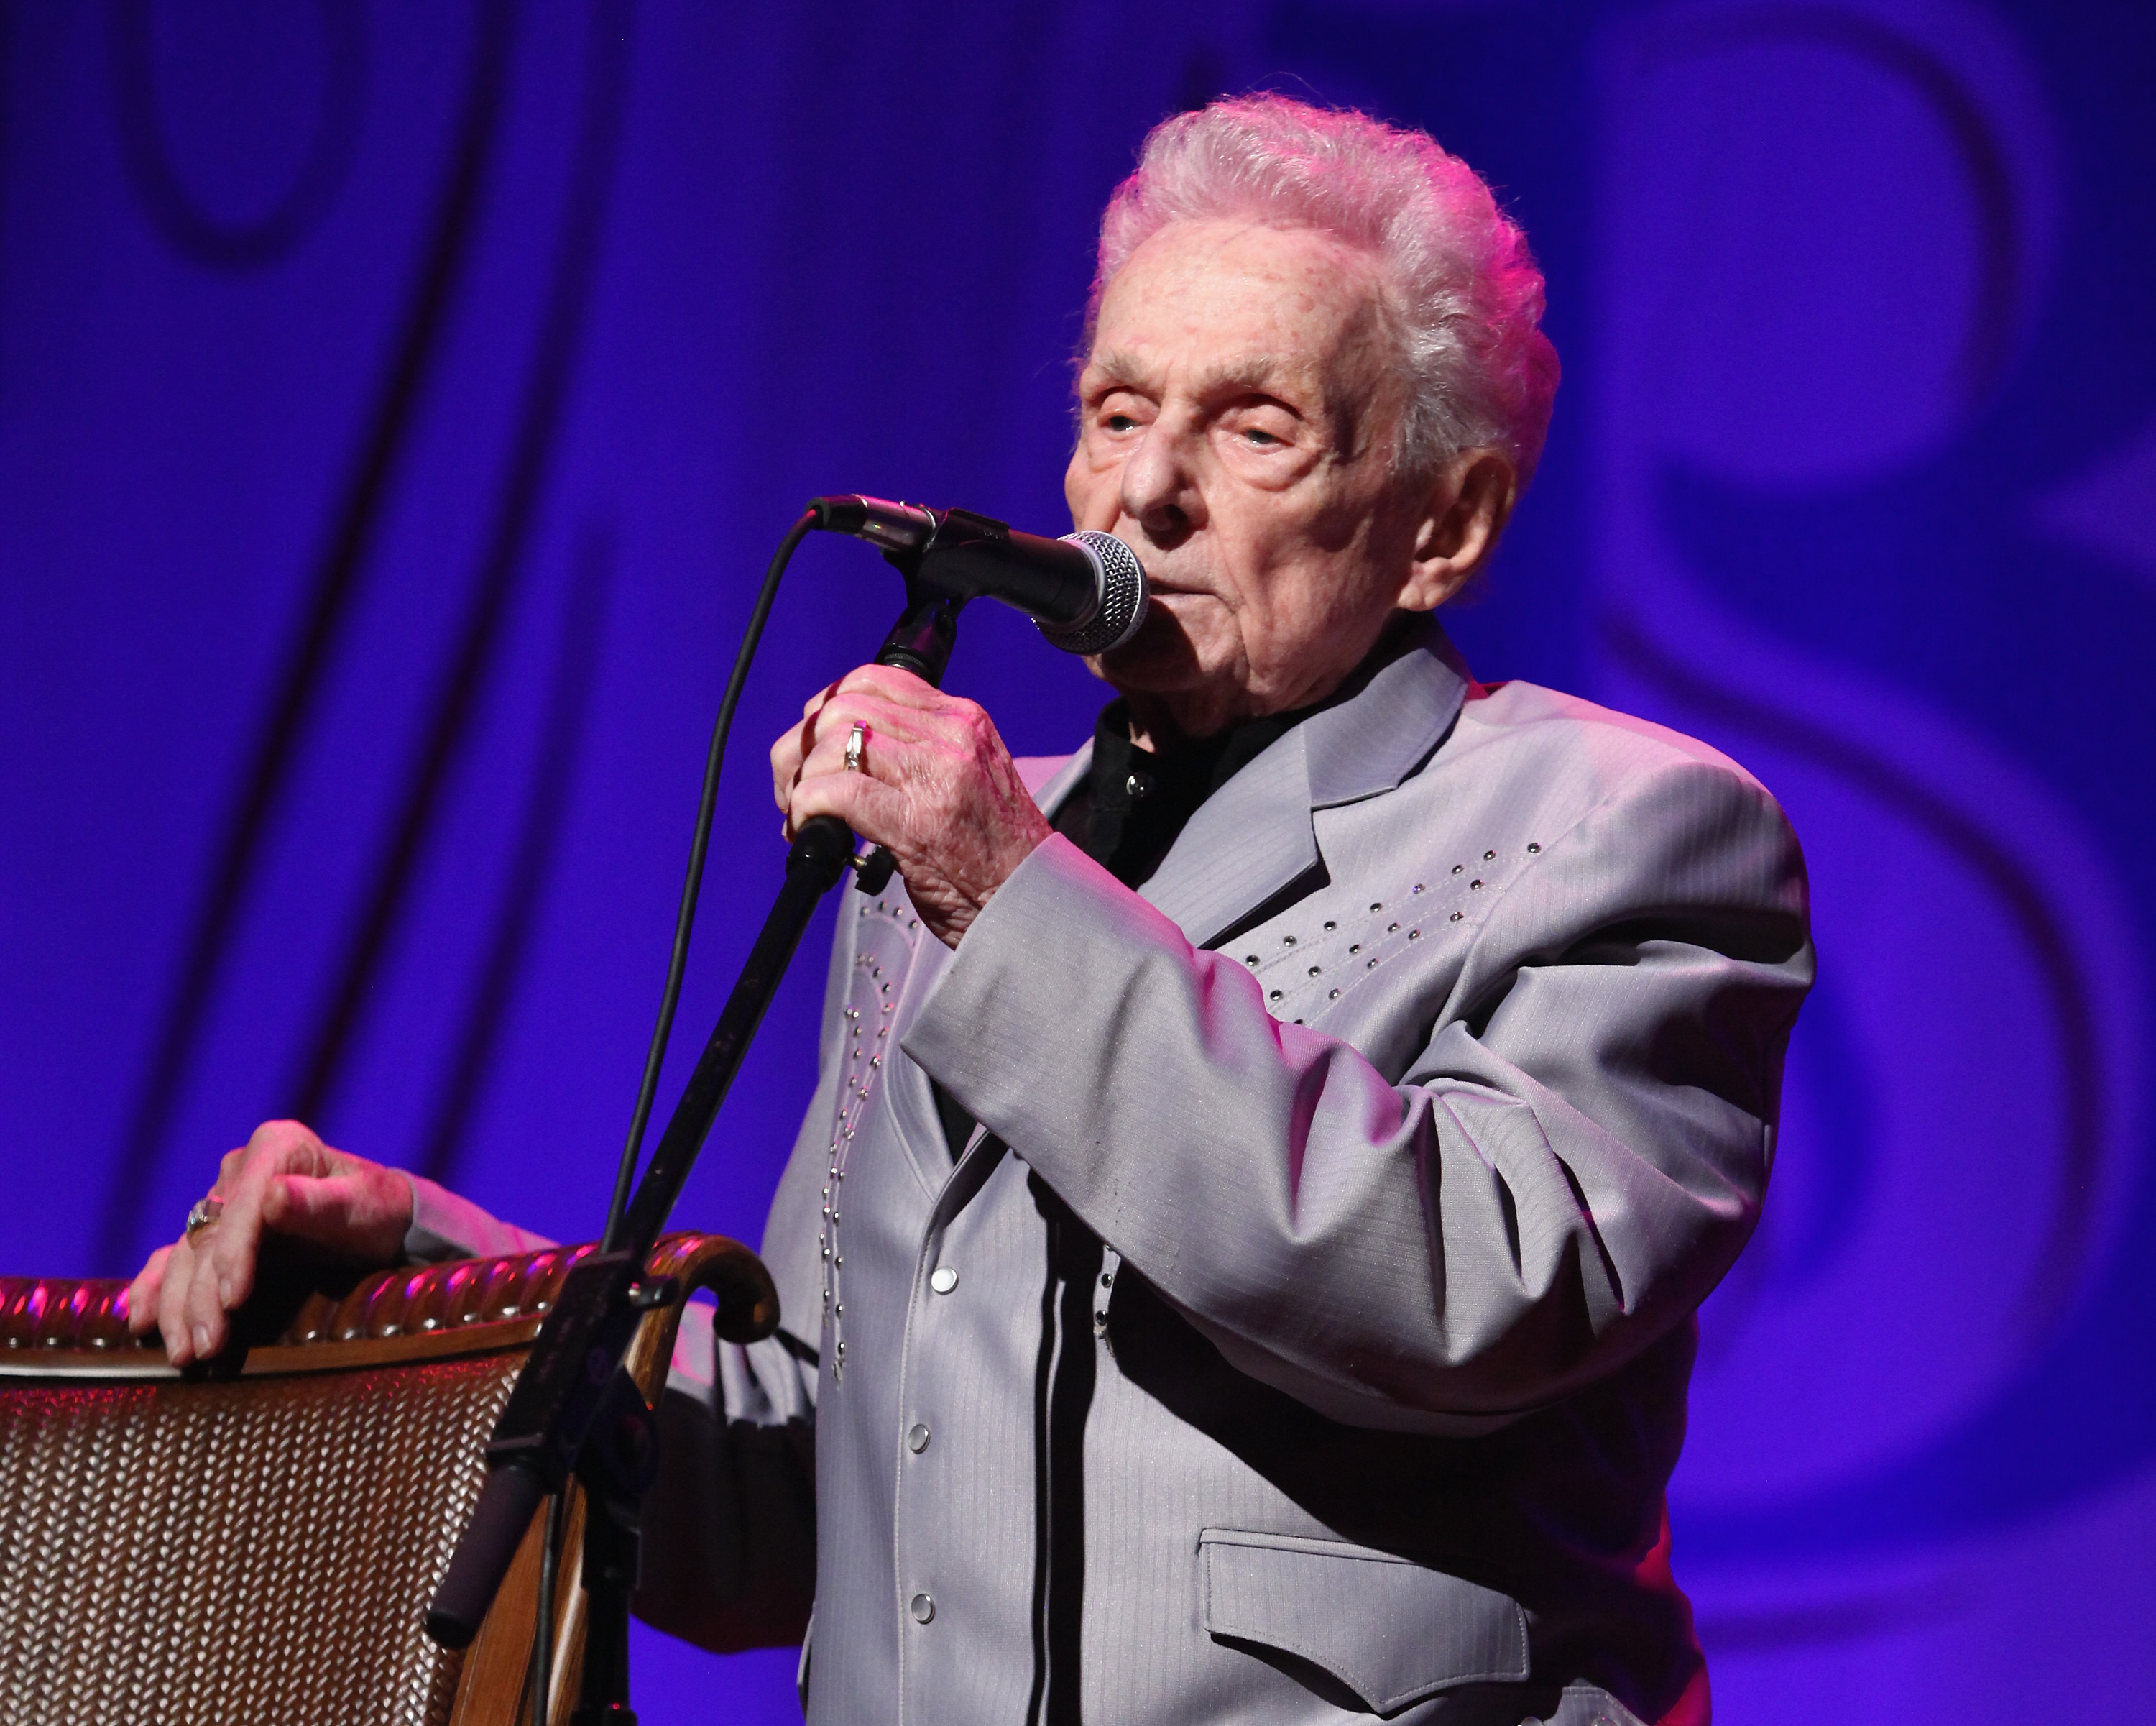 Ralph Stanley on His All-Star Album With Robert Plant, Dierks Bentley